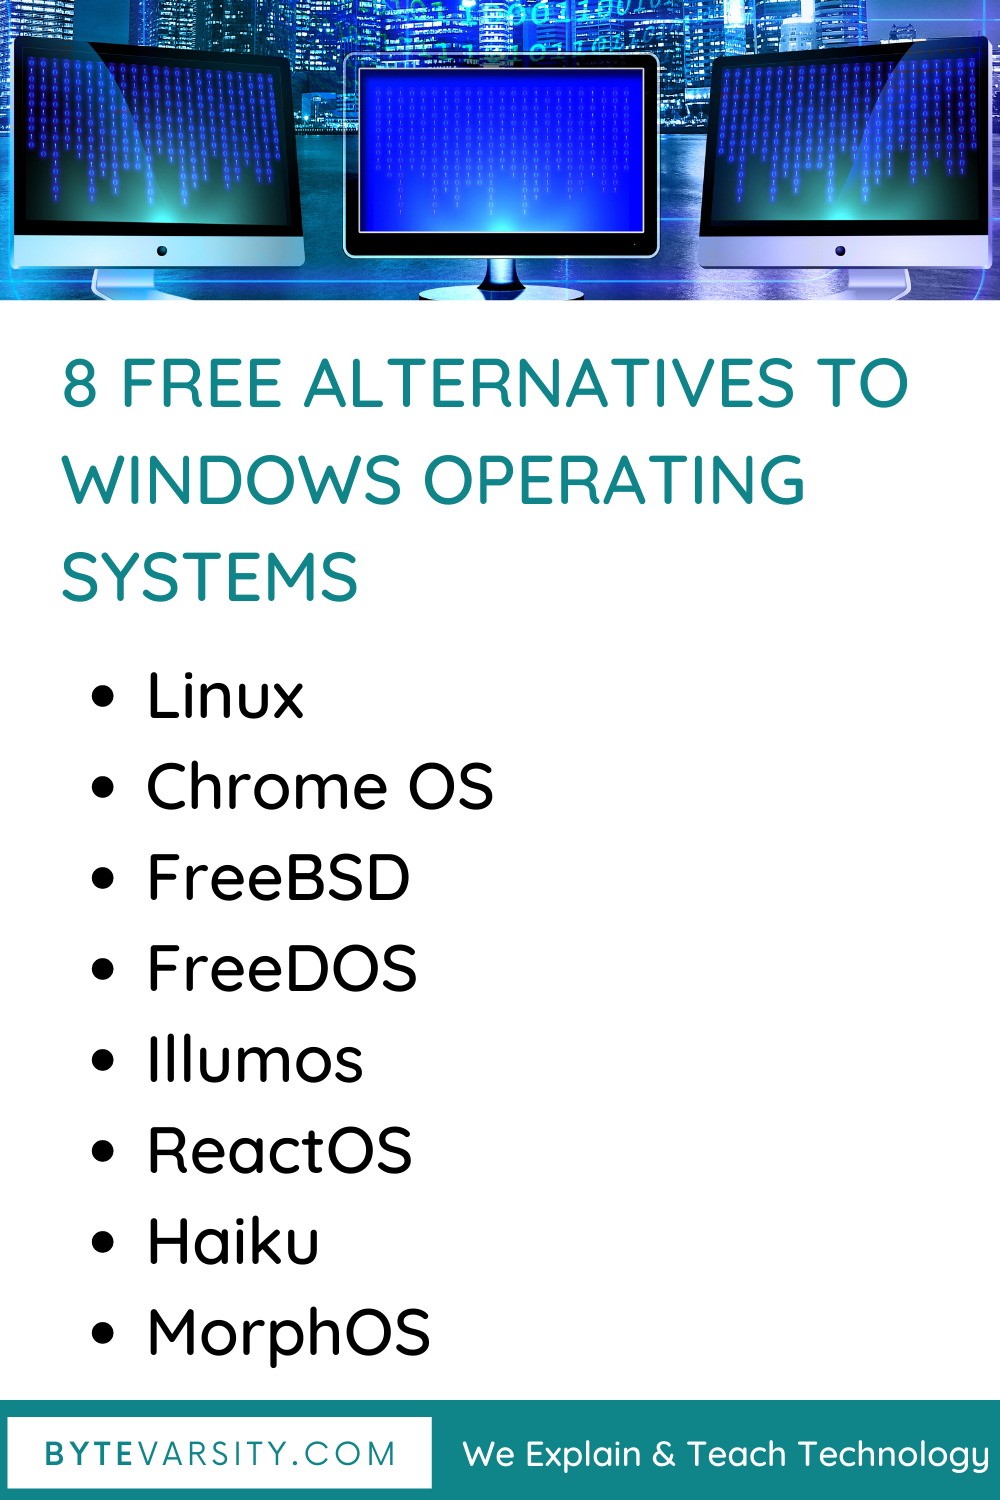 8 Free Alternatives To Windows In 2020 in 2020 | Free ...